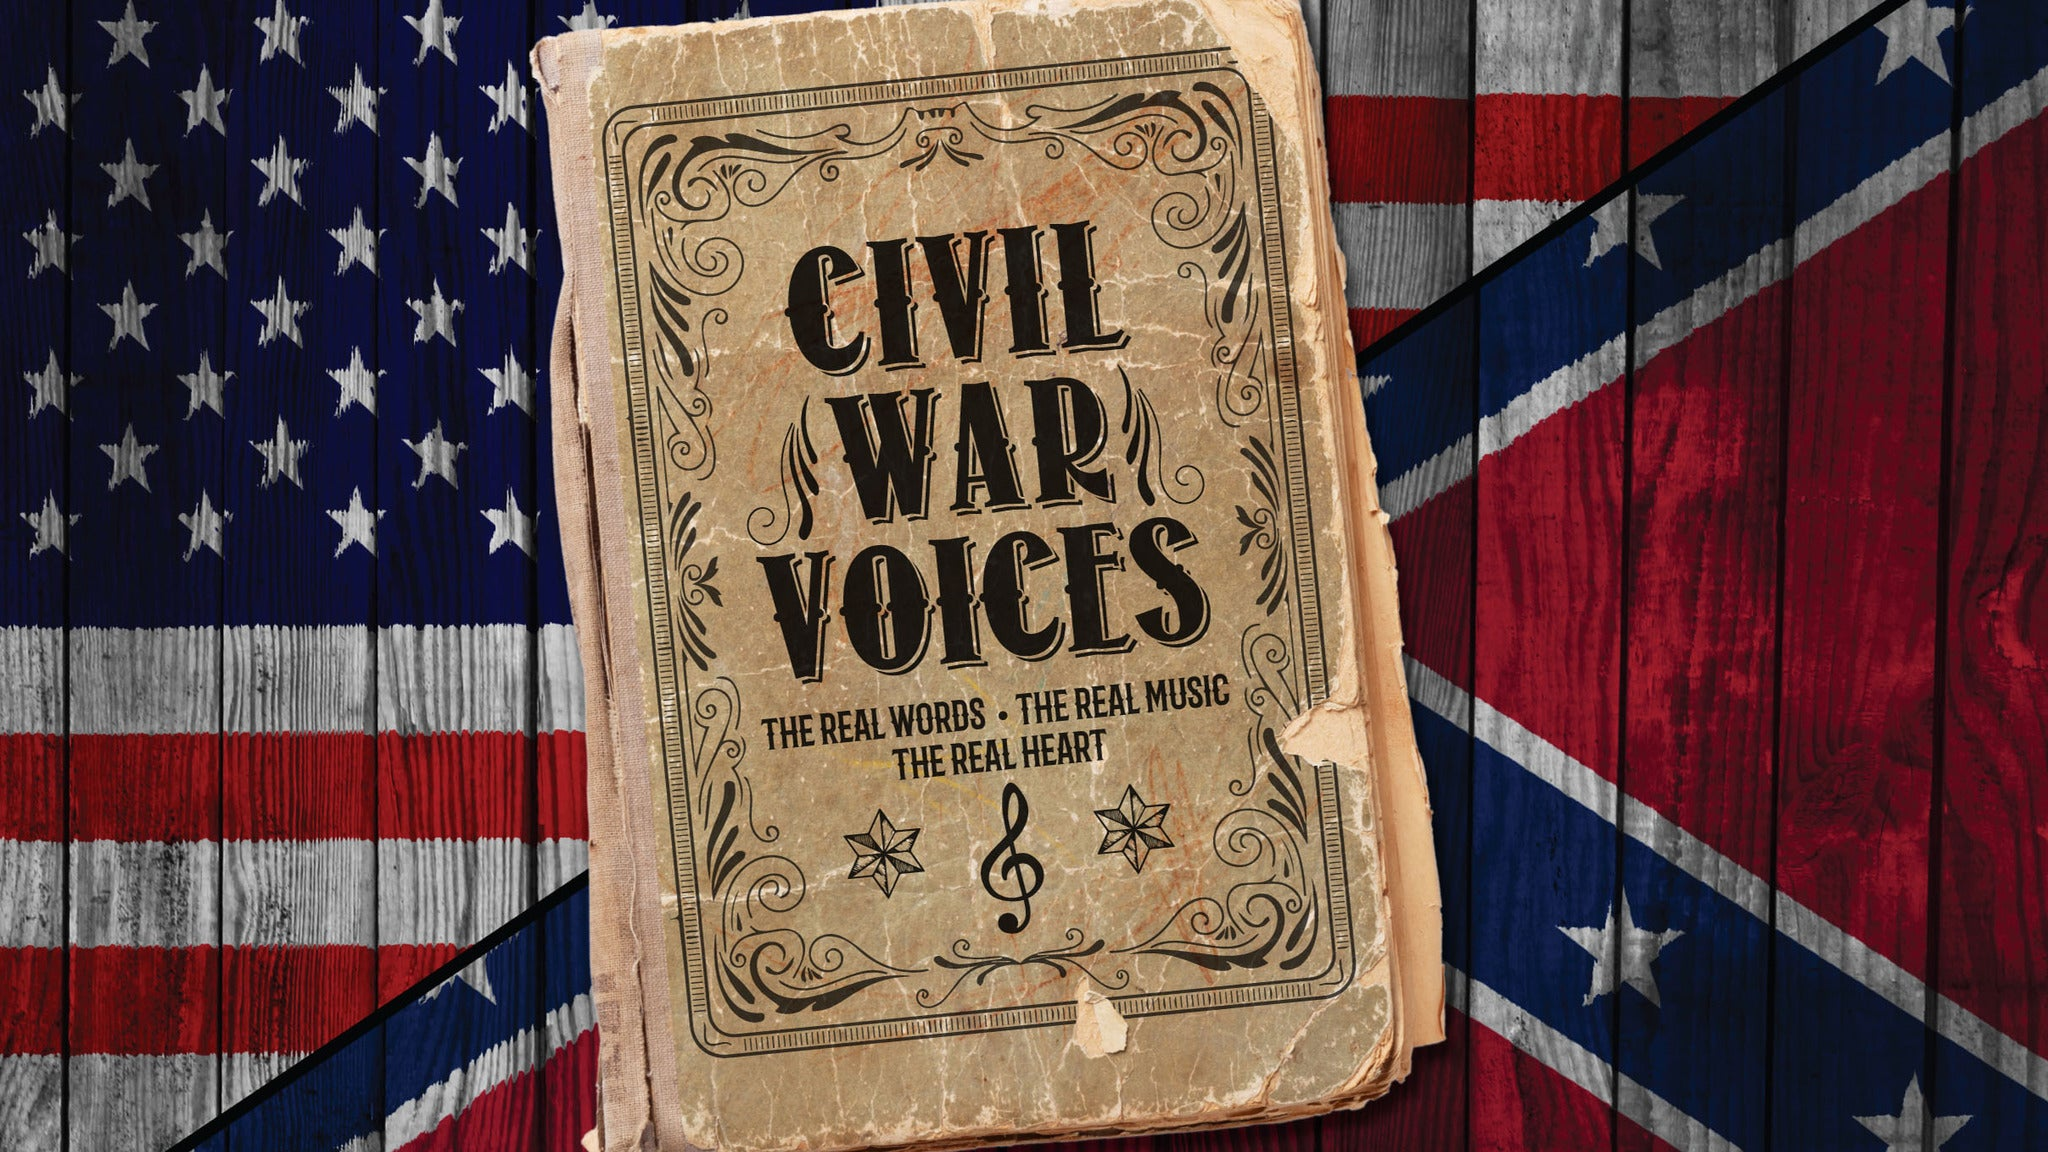 Walnut Street Theatre's Civil War Voices